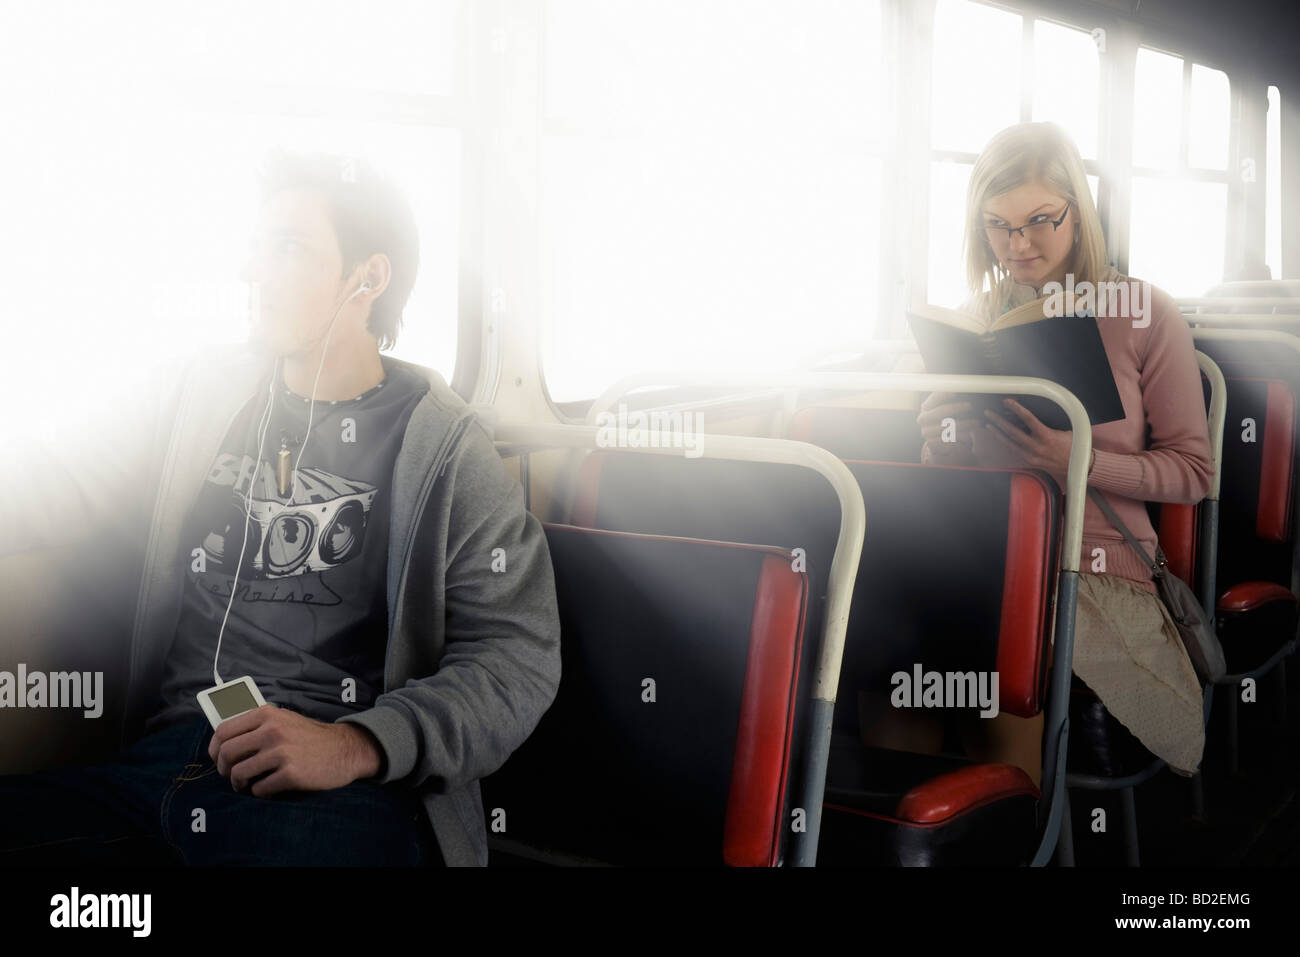 Shy girl attracted to oblivious boy - Stock Image